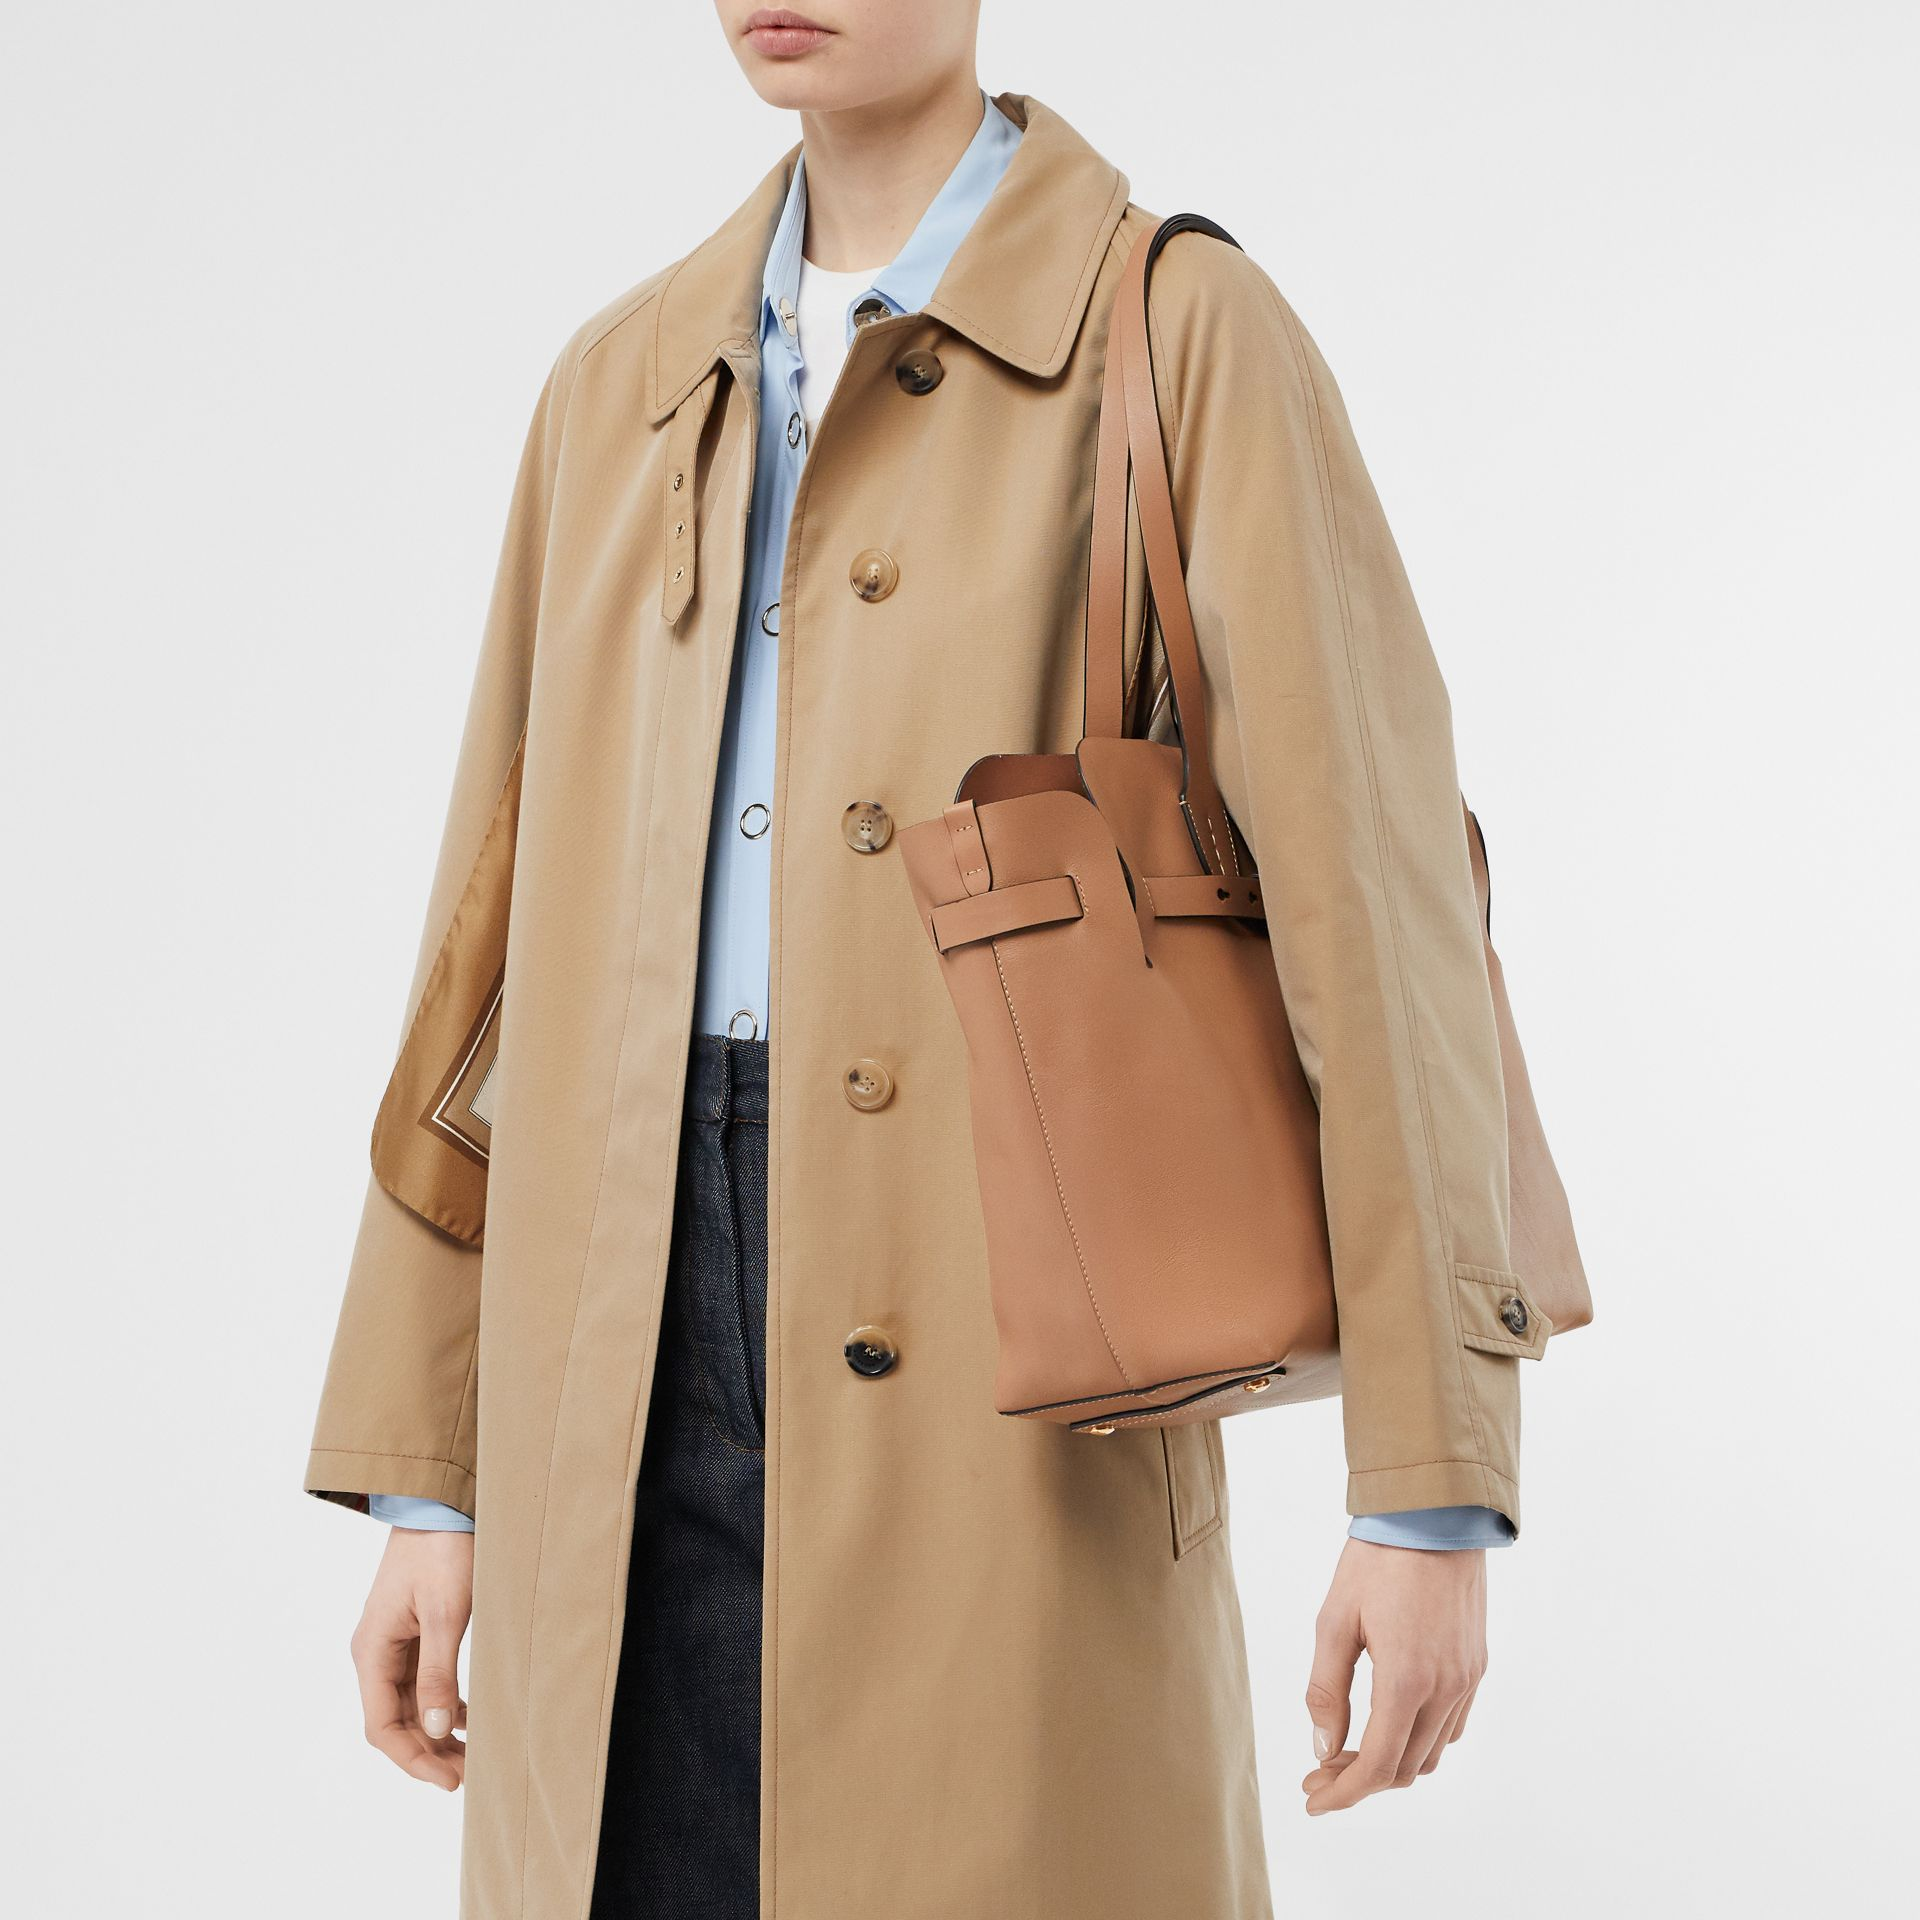 Sac The Belt moyen en cuir doux (Camel Clair) - Femme | Burberry - photo de la galerie 2